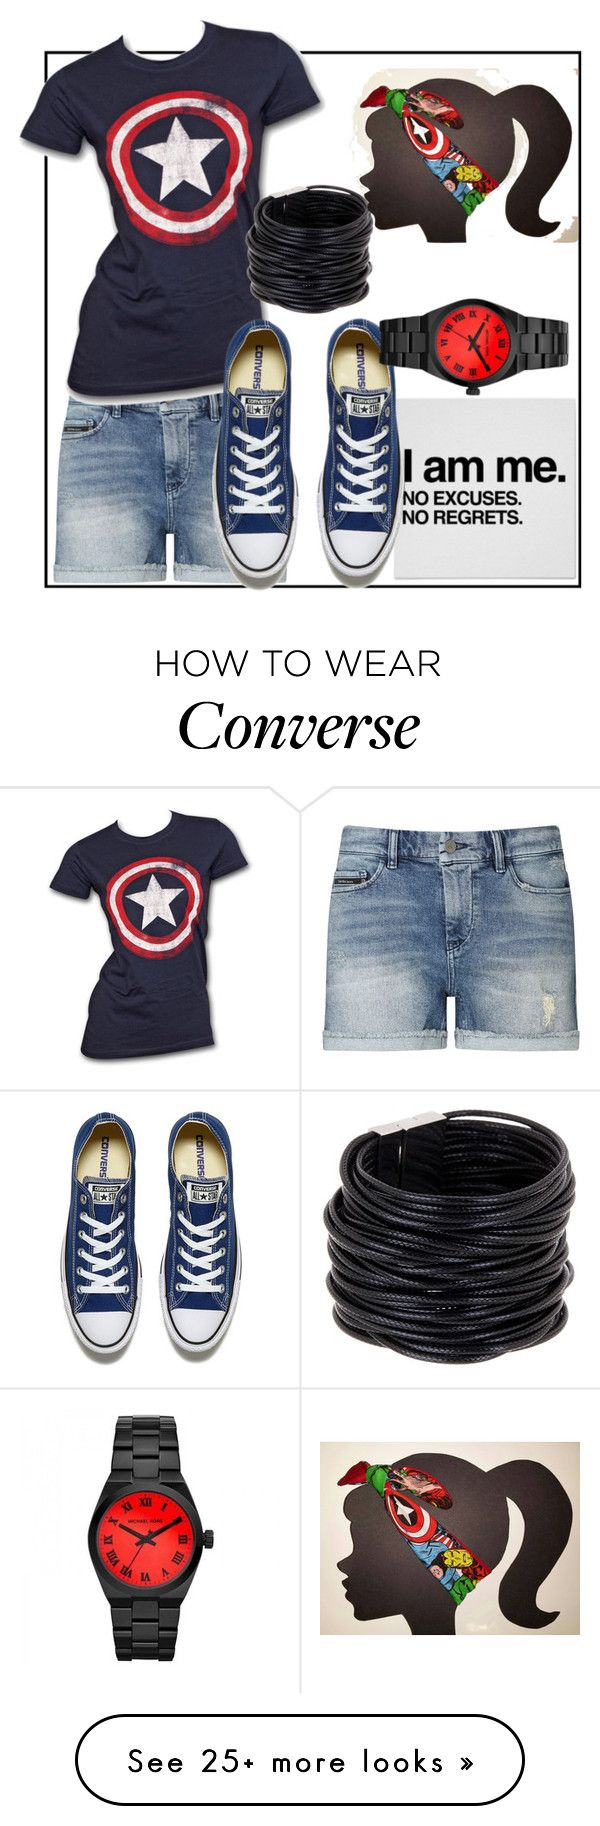 """Captain America ~"" by bakerstreetbelle on Polyvore featuring Calvin Klein, Marvel, Converse, Saachi, Michael Kors, converse, movies, marvel, CasualChic and comics"